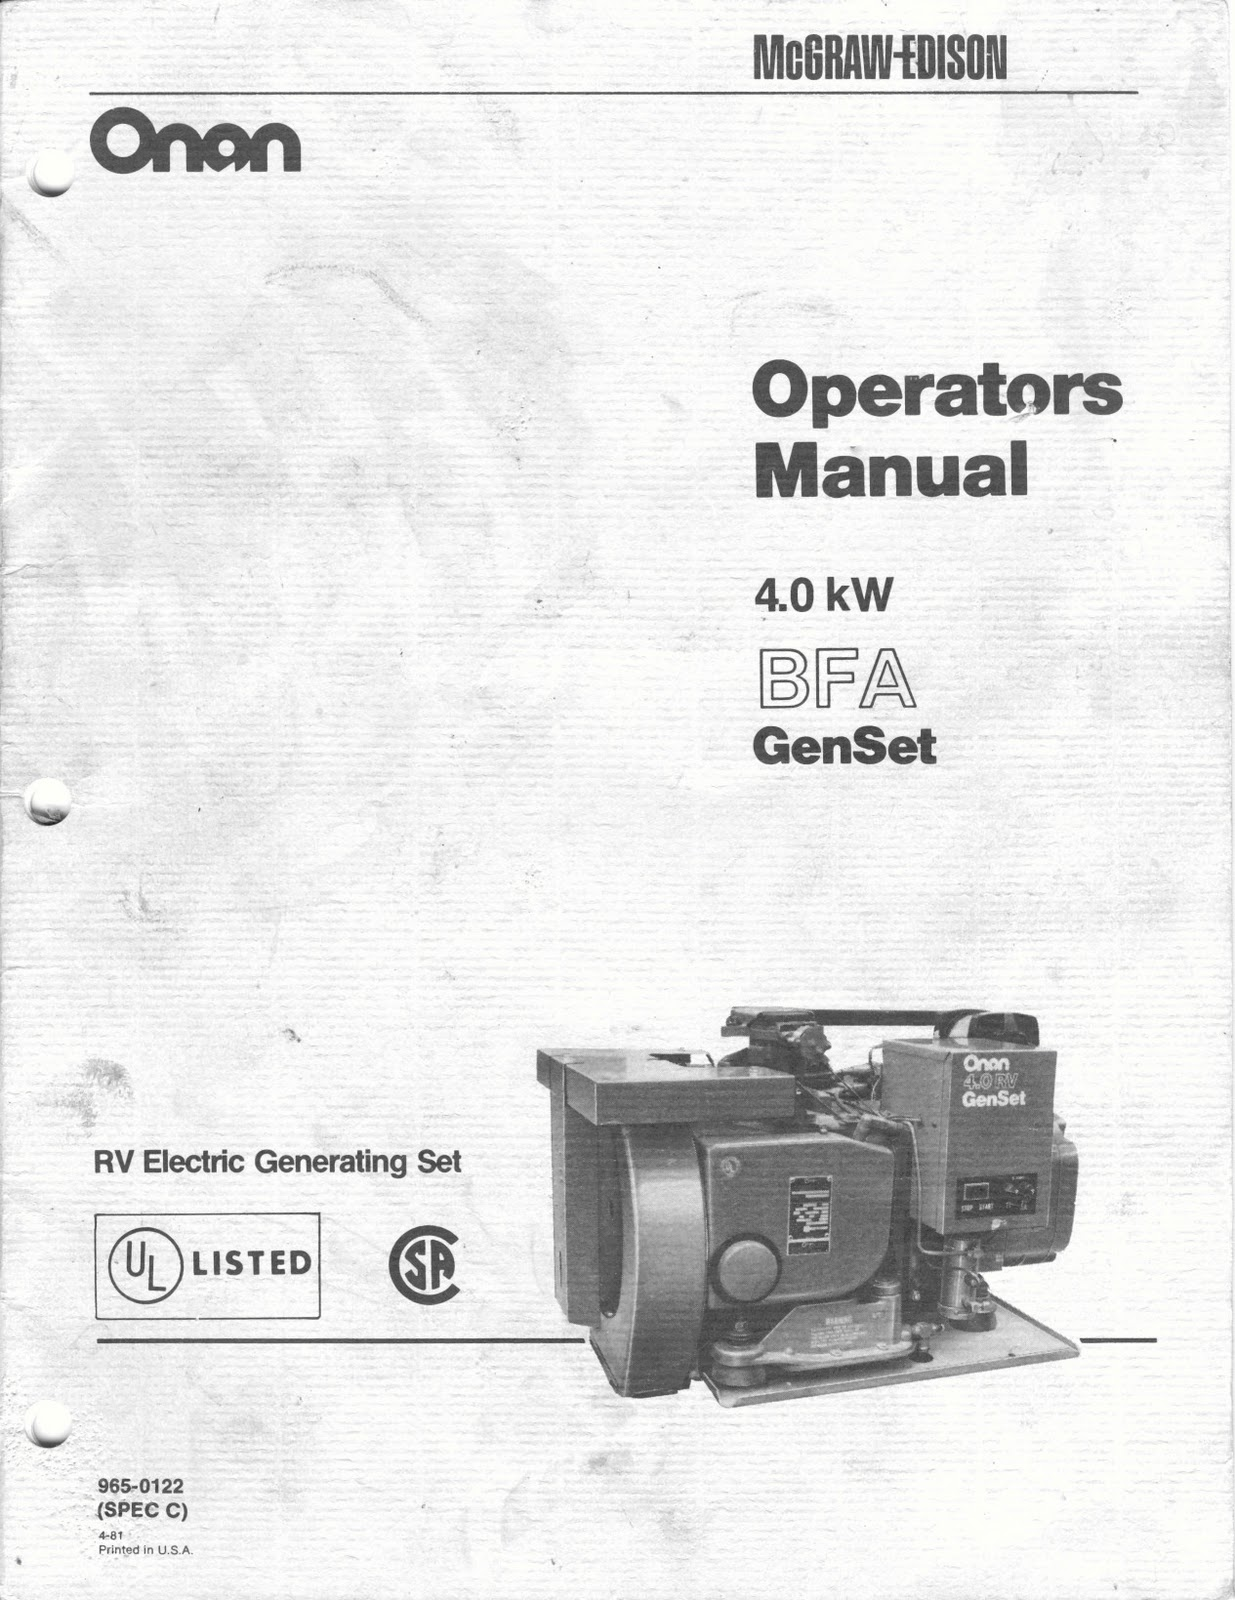 ONAN 4.0 KW BFA Genset Operators Manual